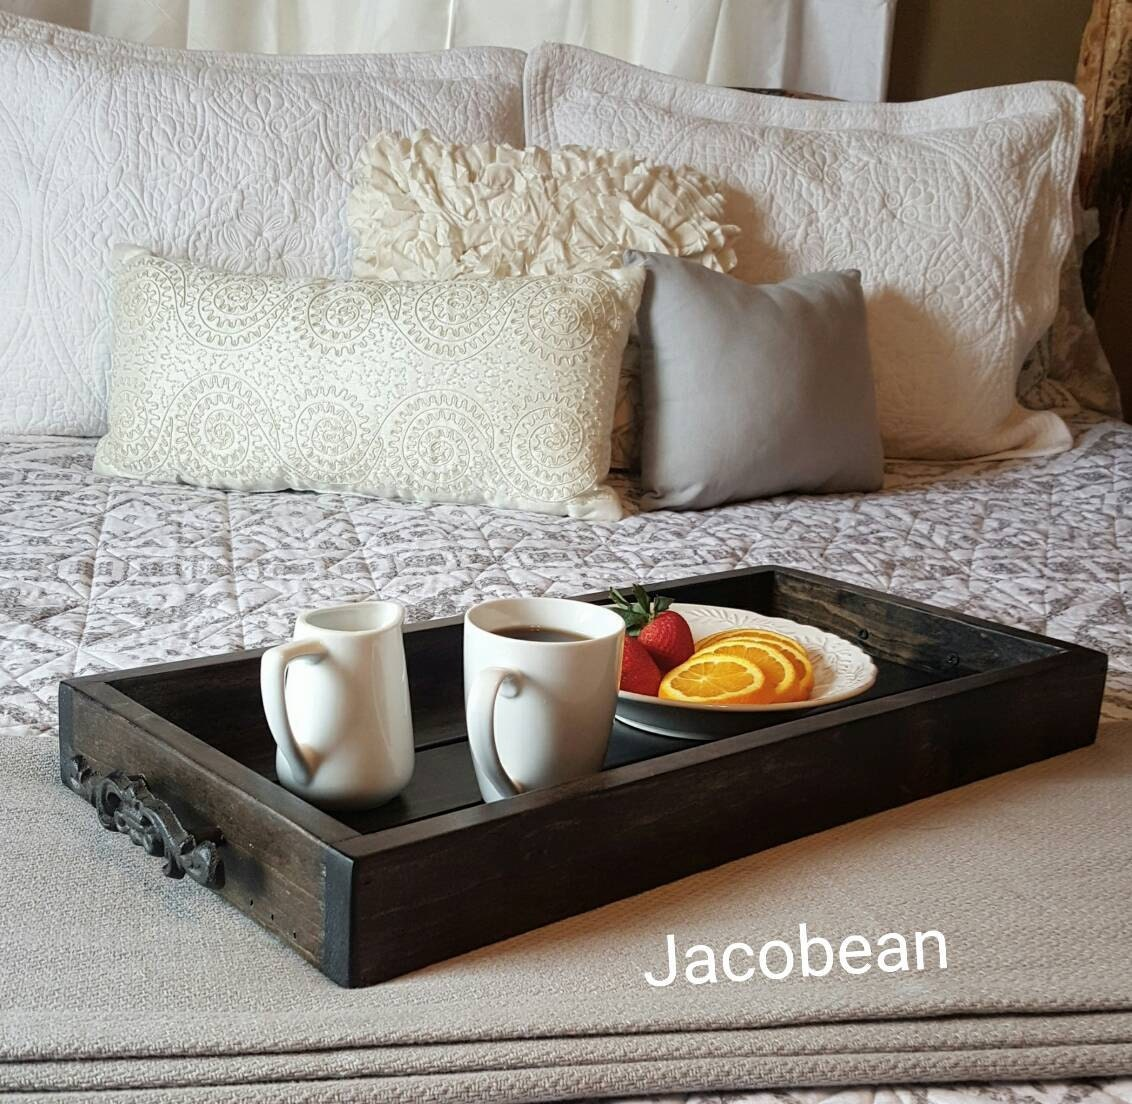 Magazine Tray Bed Tray Breakfast Tray Decorative Tray Coffee Table Tray Casserole Tray